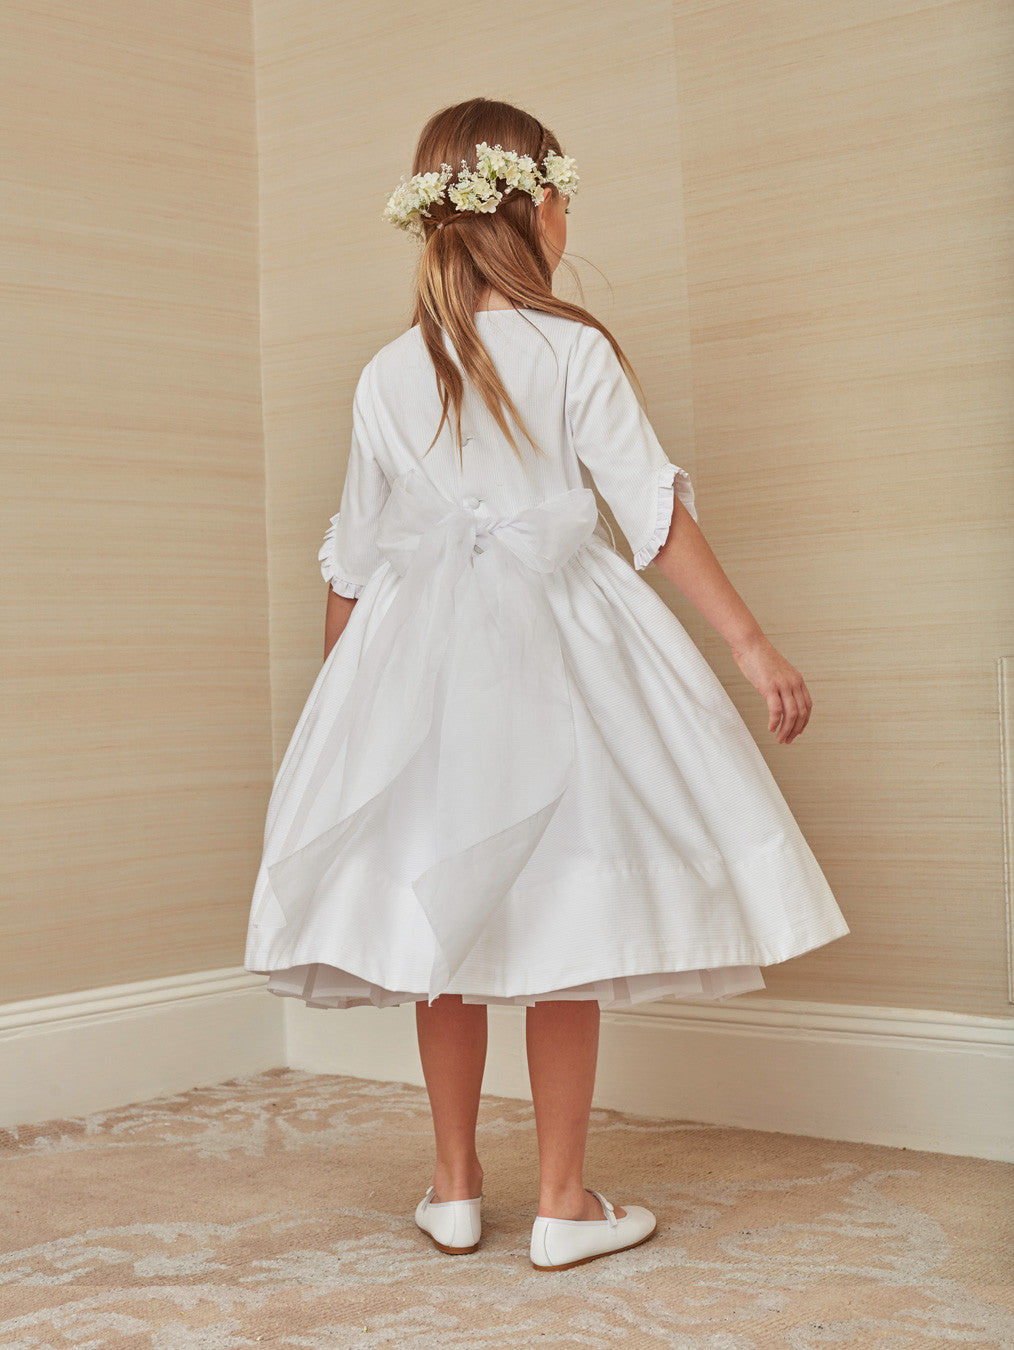 Chic First Communion Dress in off-white Cotton